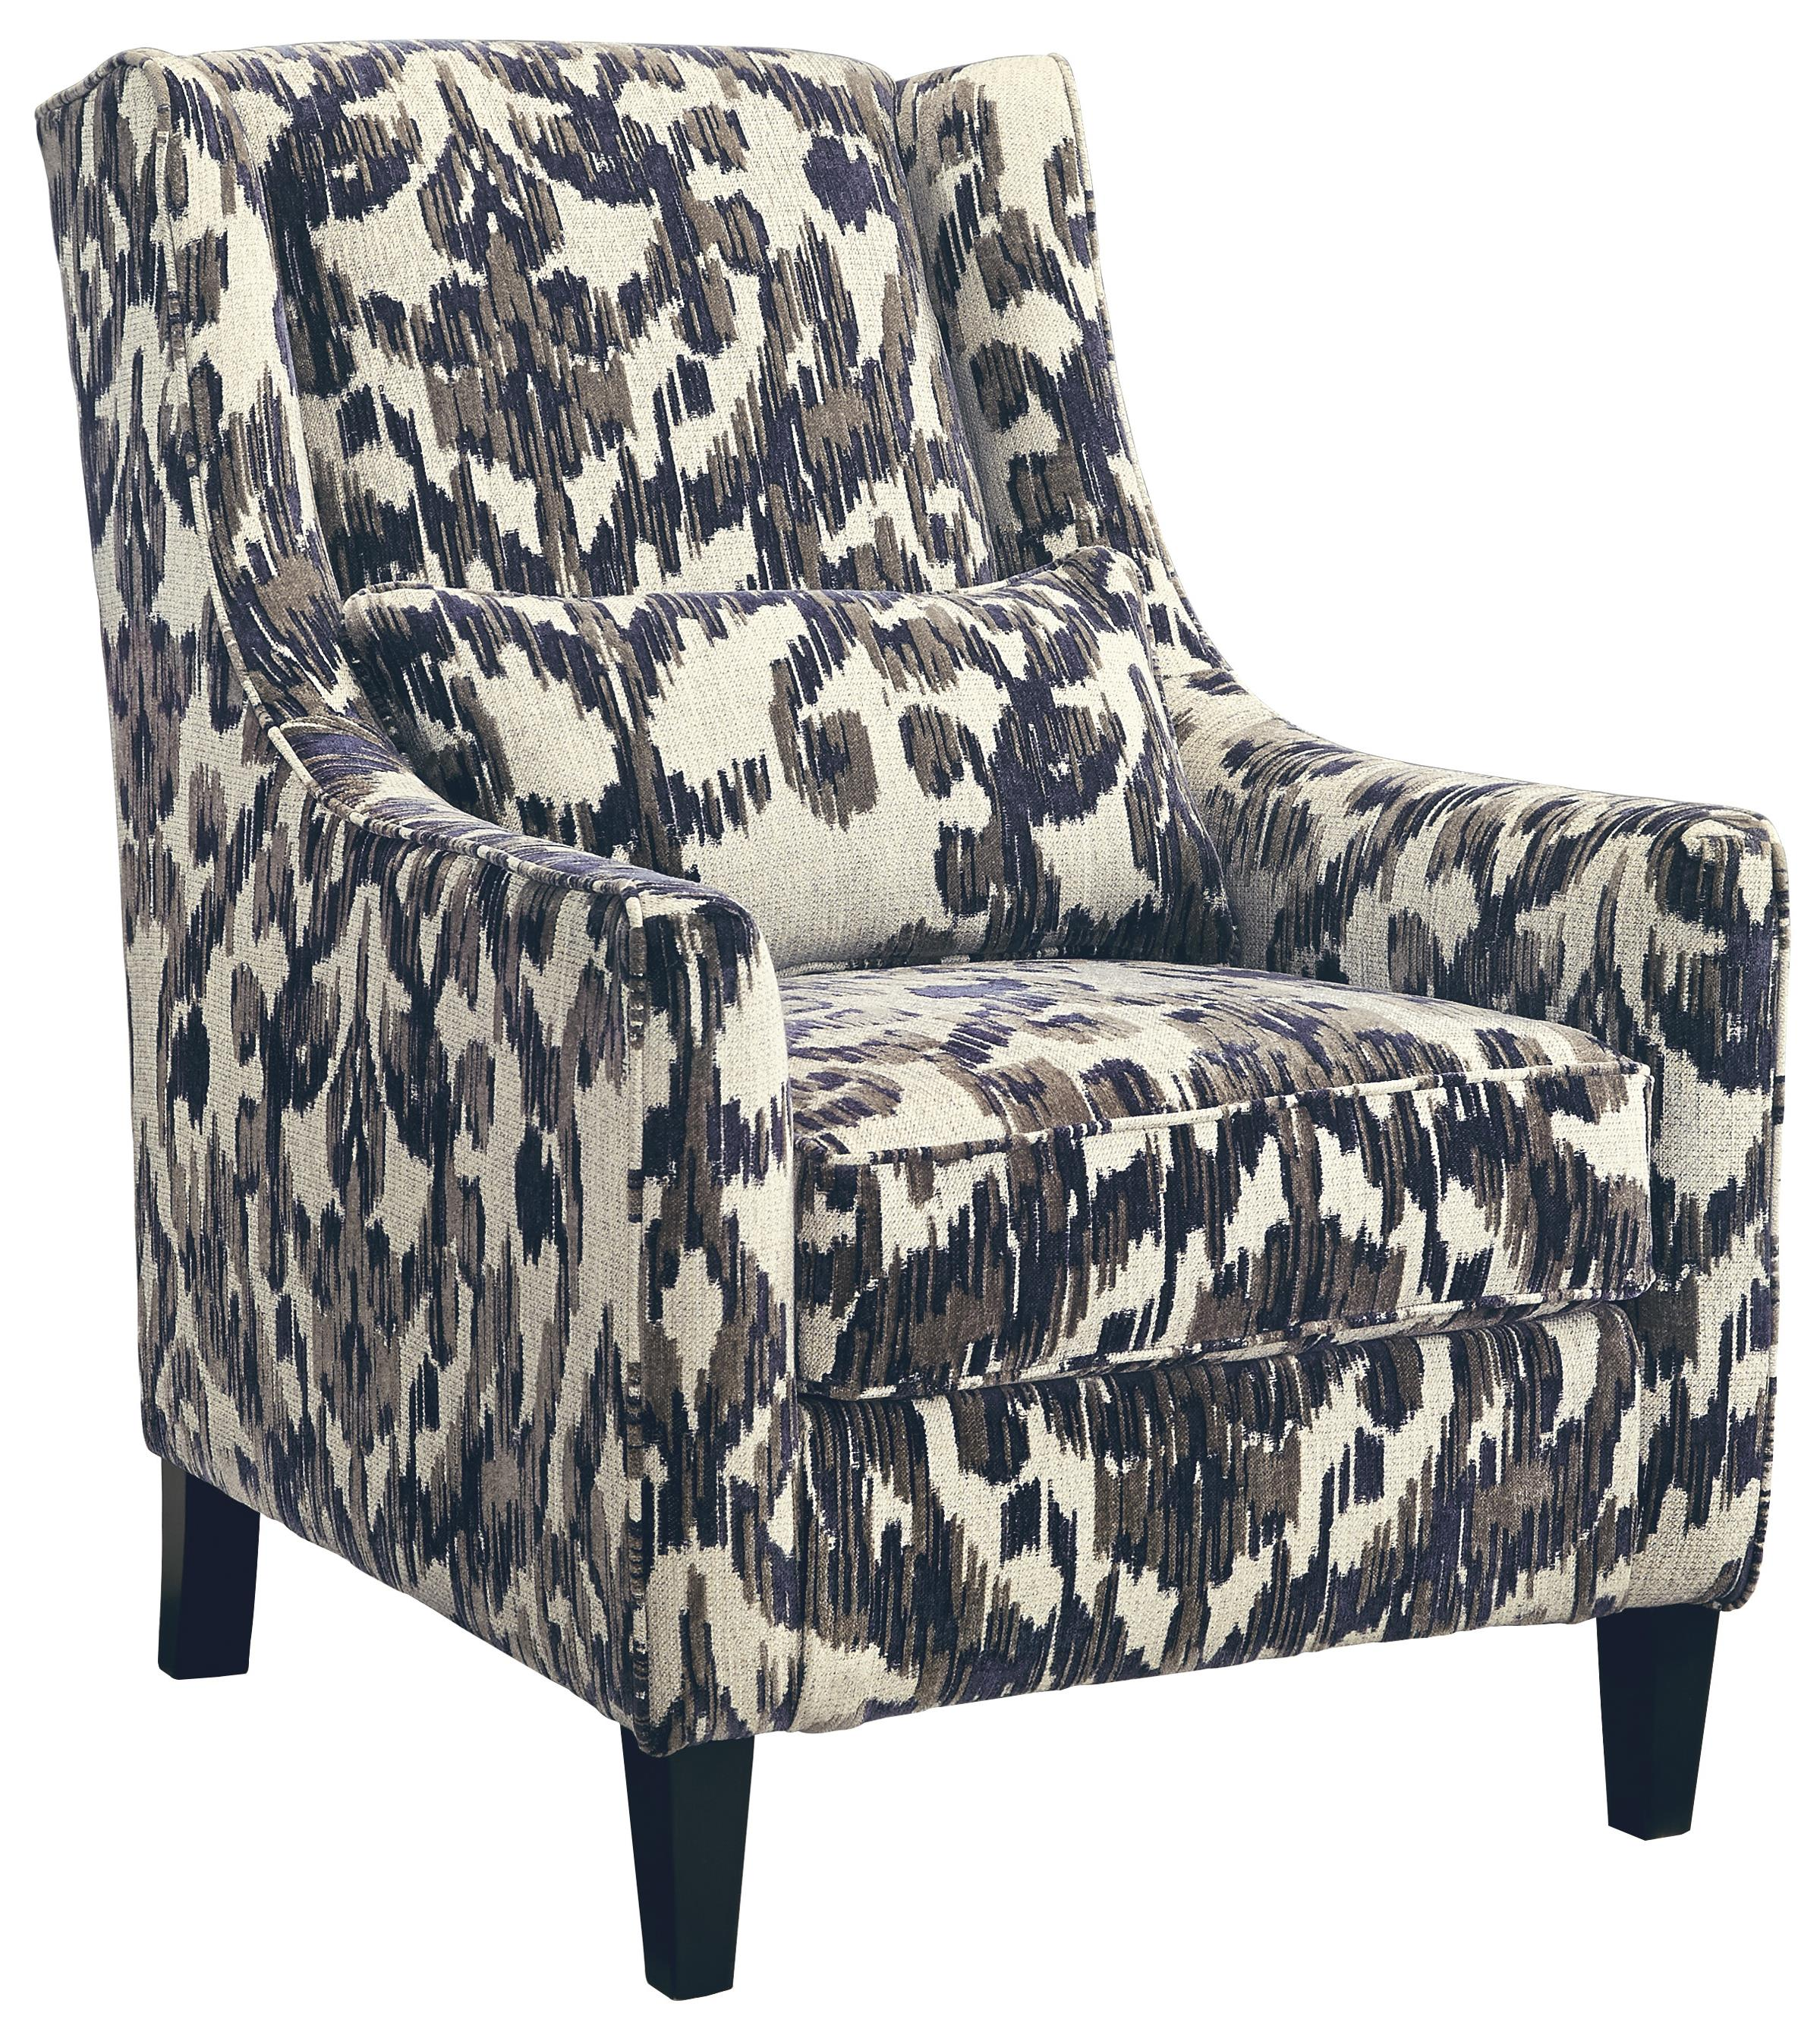 Signature Design by Ashley Owensbe Accent Accent Chair - Item Number: 751XX21